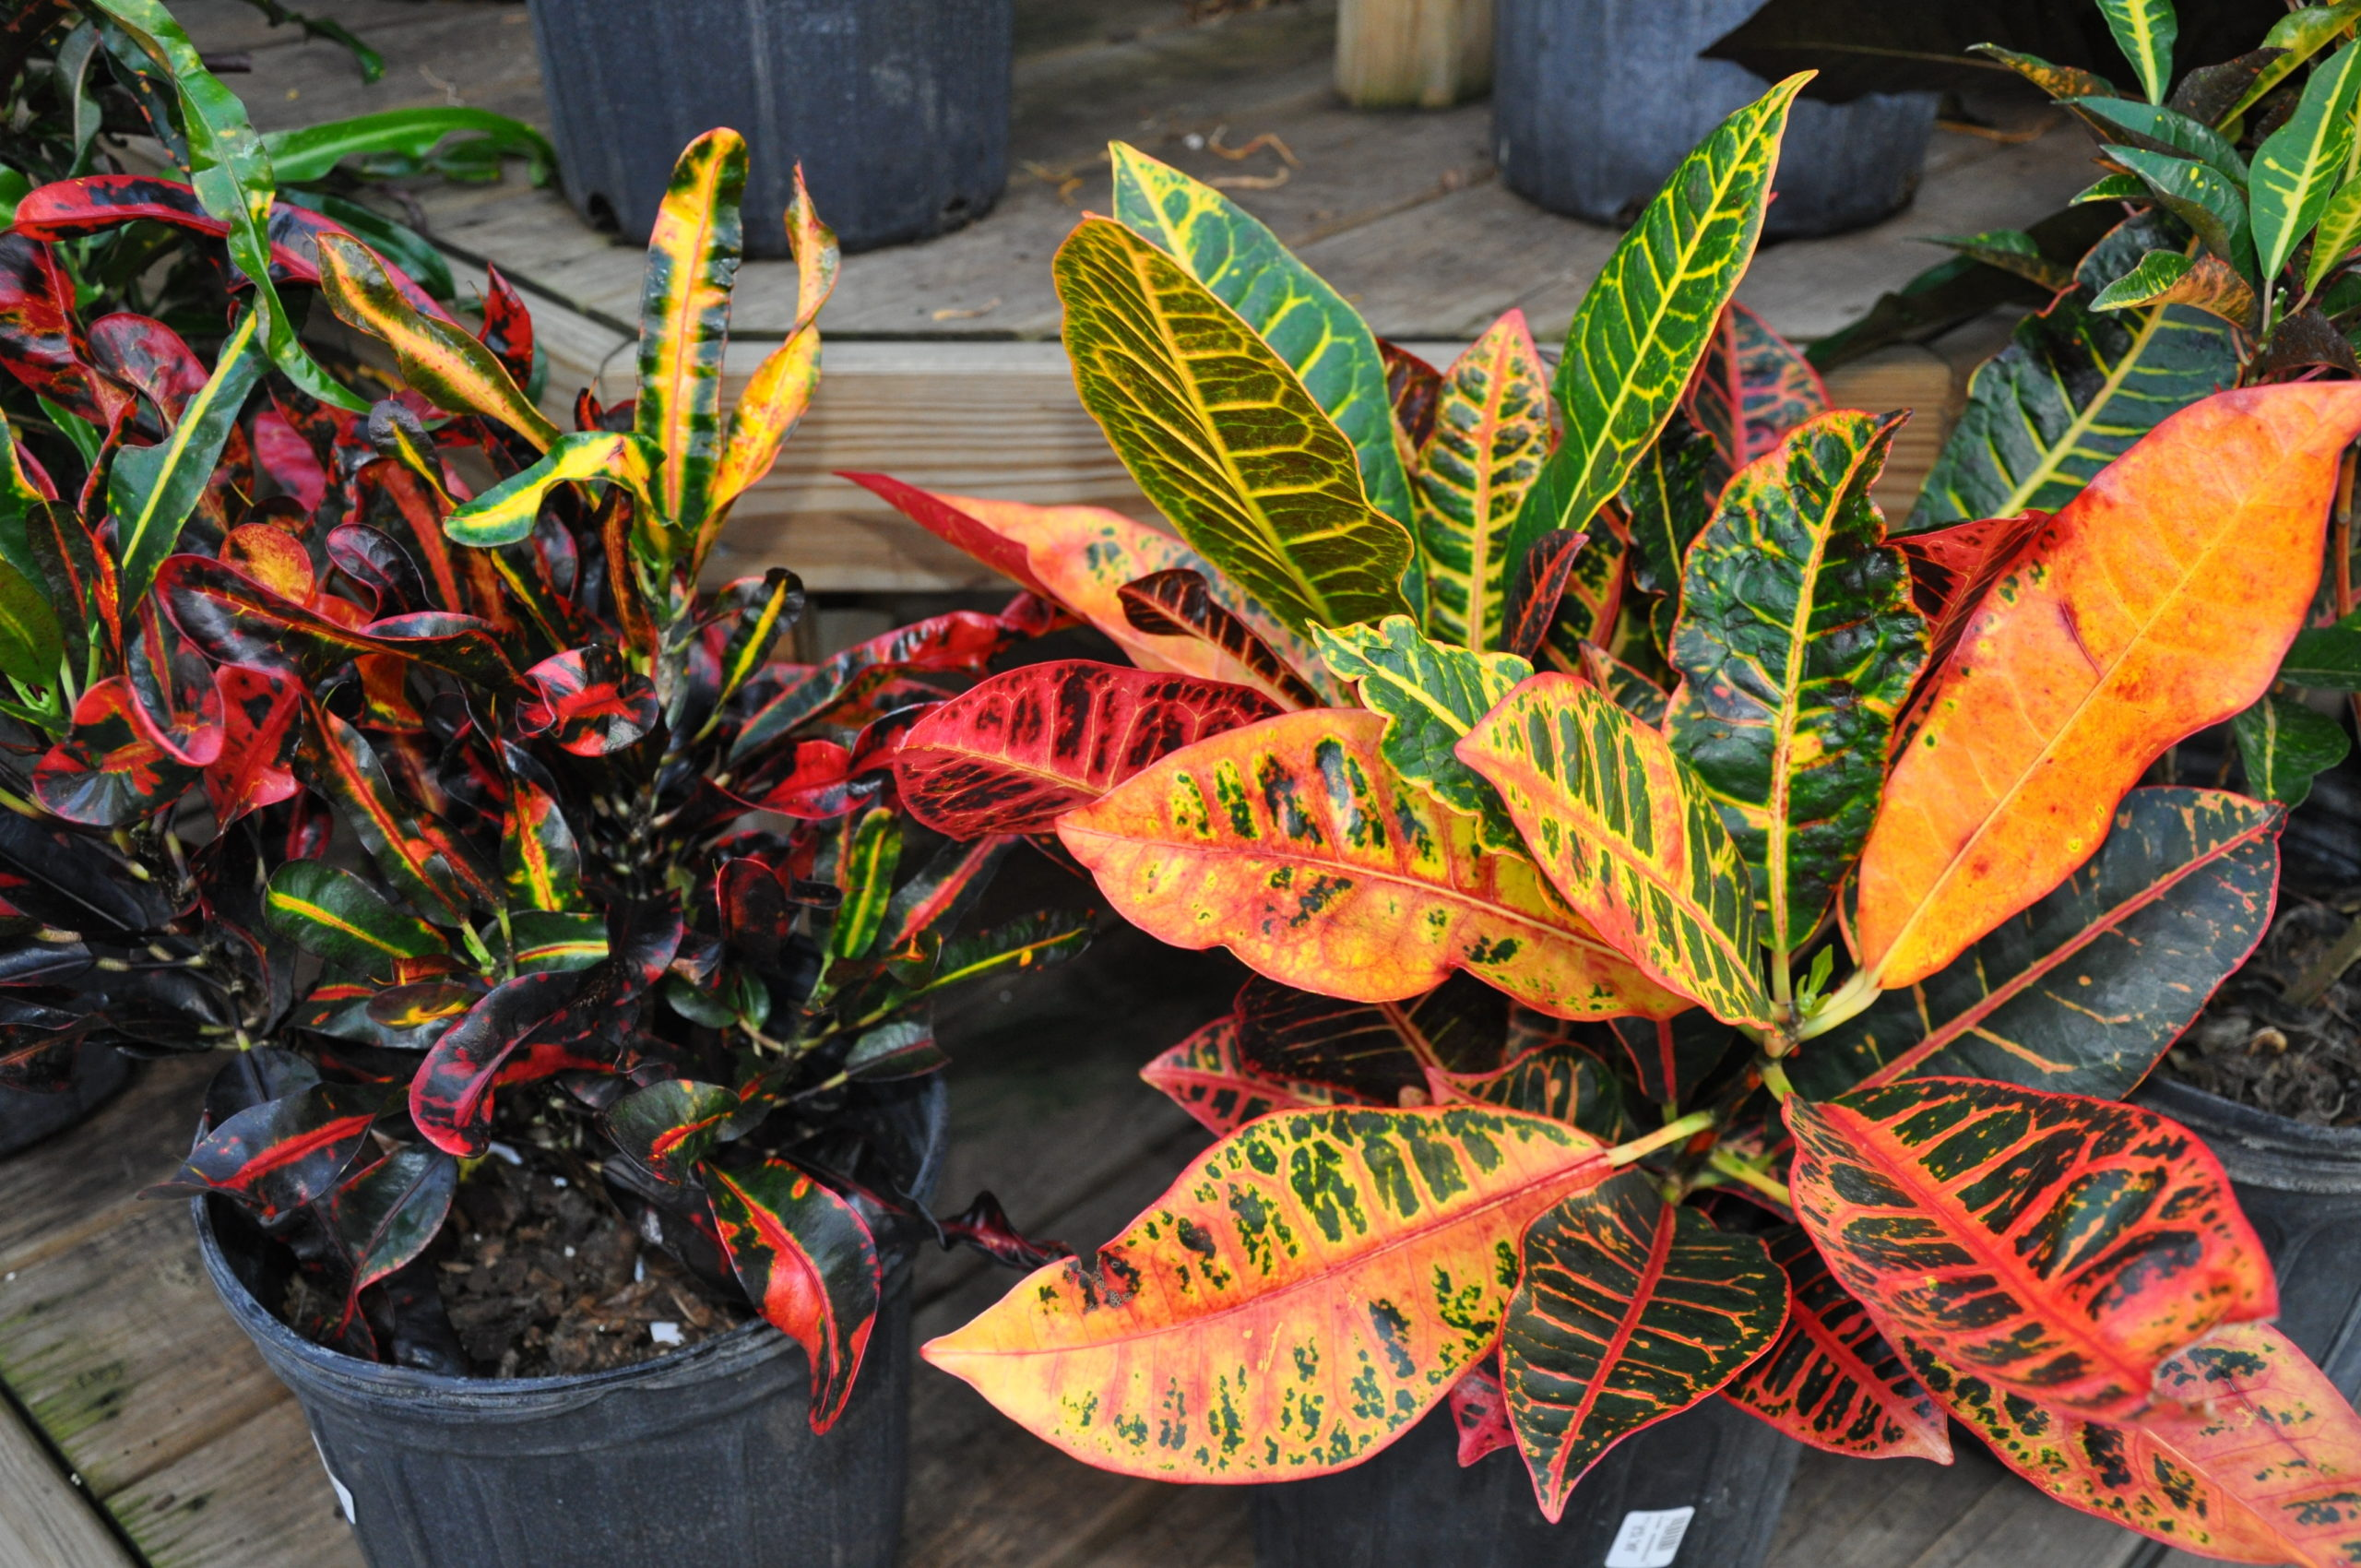 Crotons are valued for their colorful foliage and are available in pot sizes from 4 inches up. These are not long-lived plants and cold temperatures will result in sudden leaf drop.